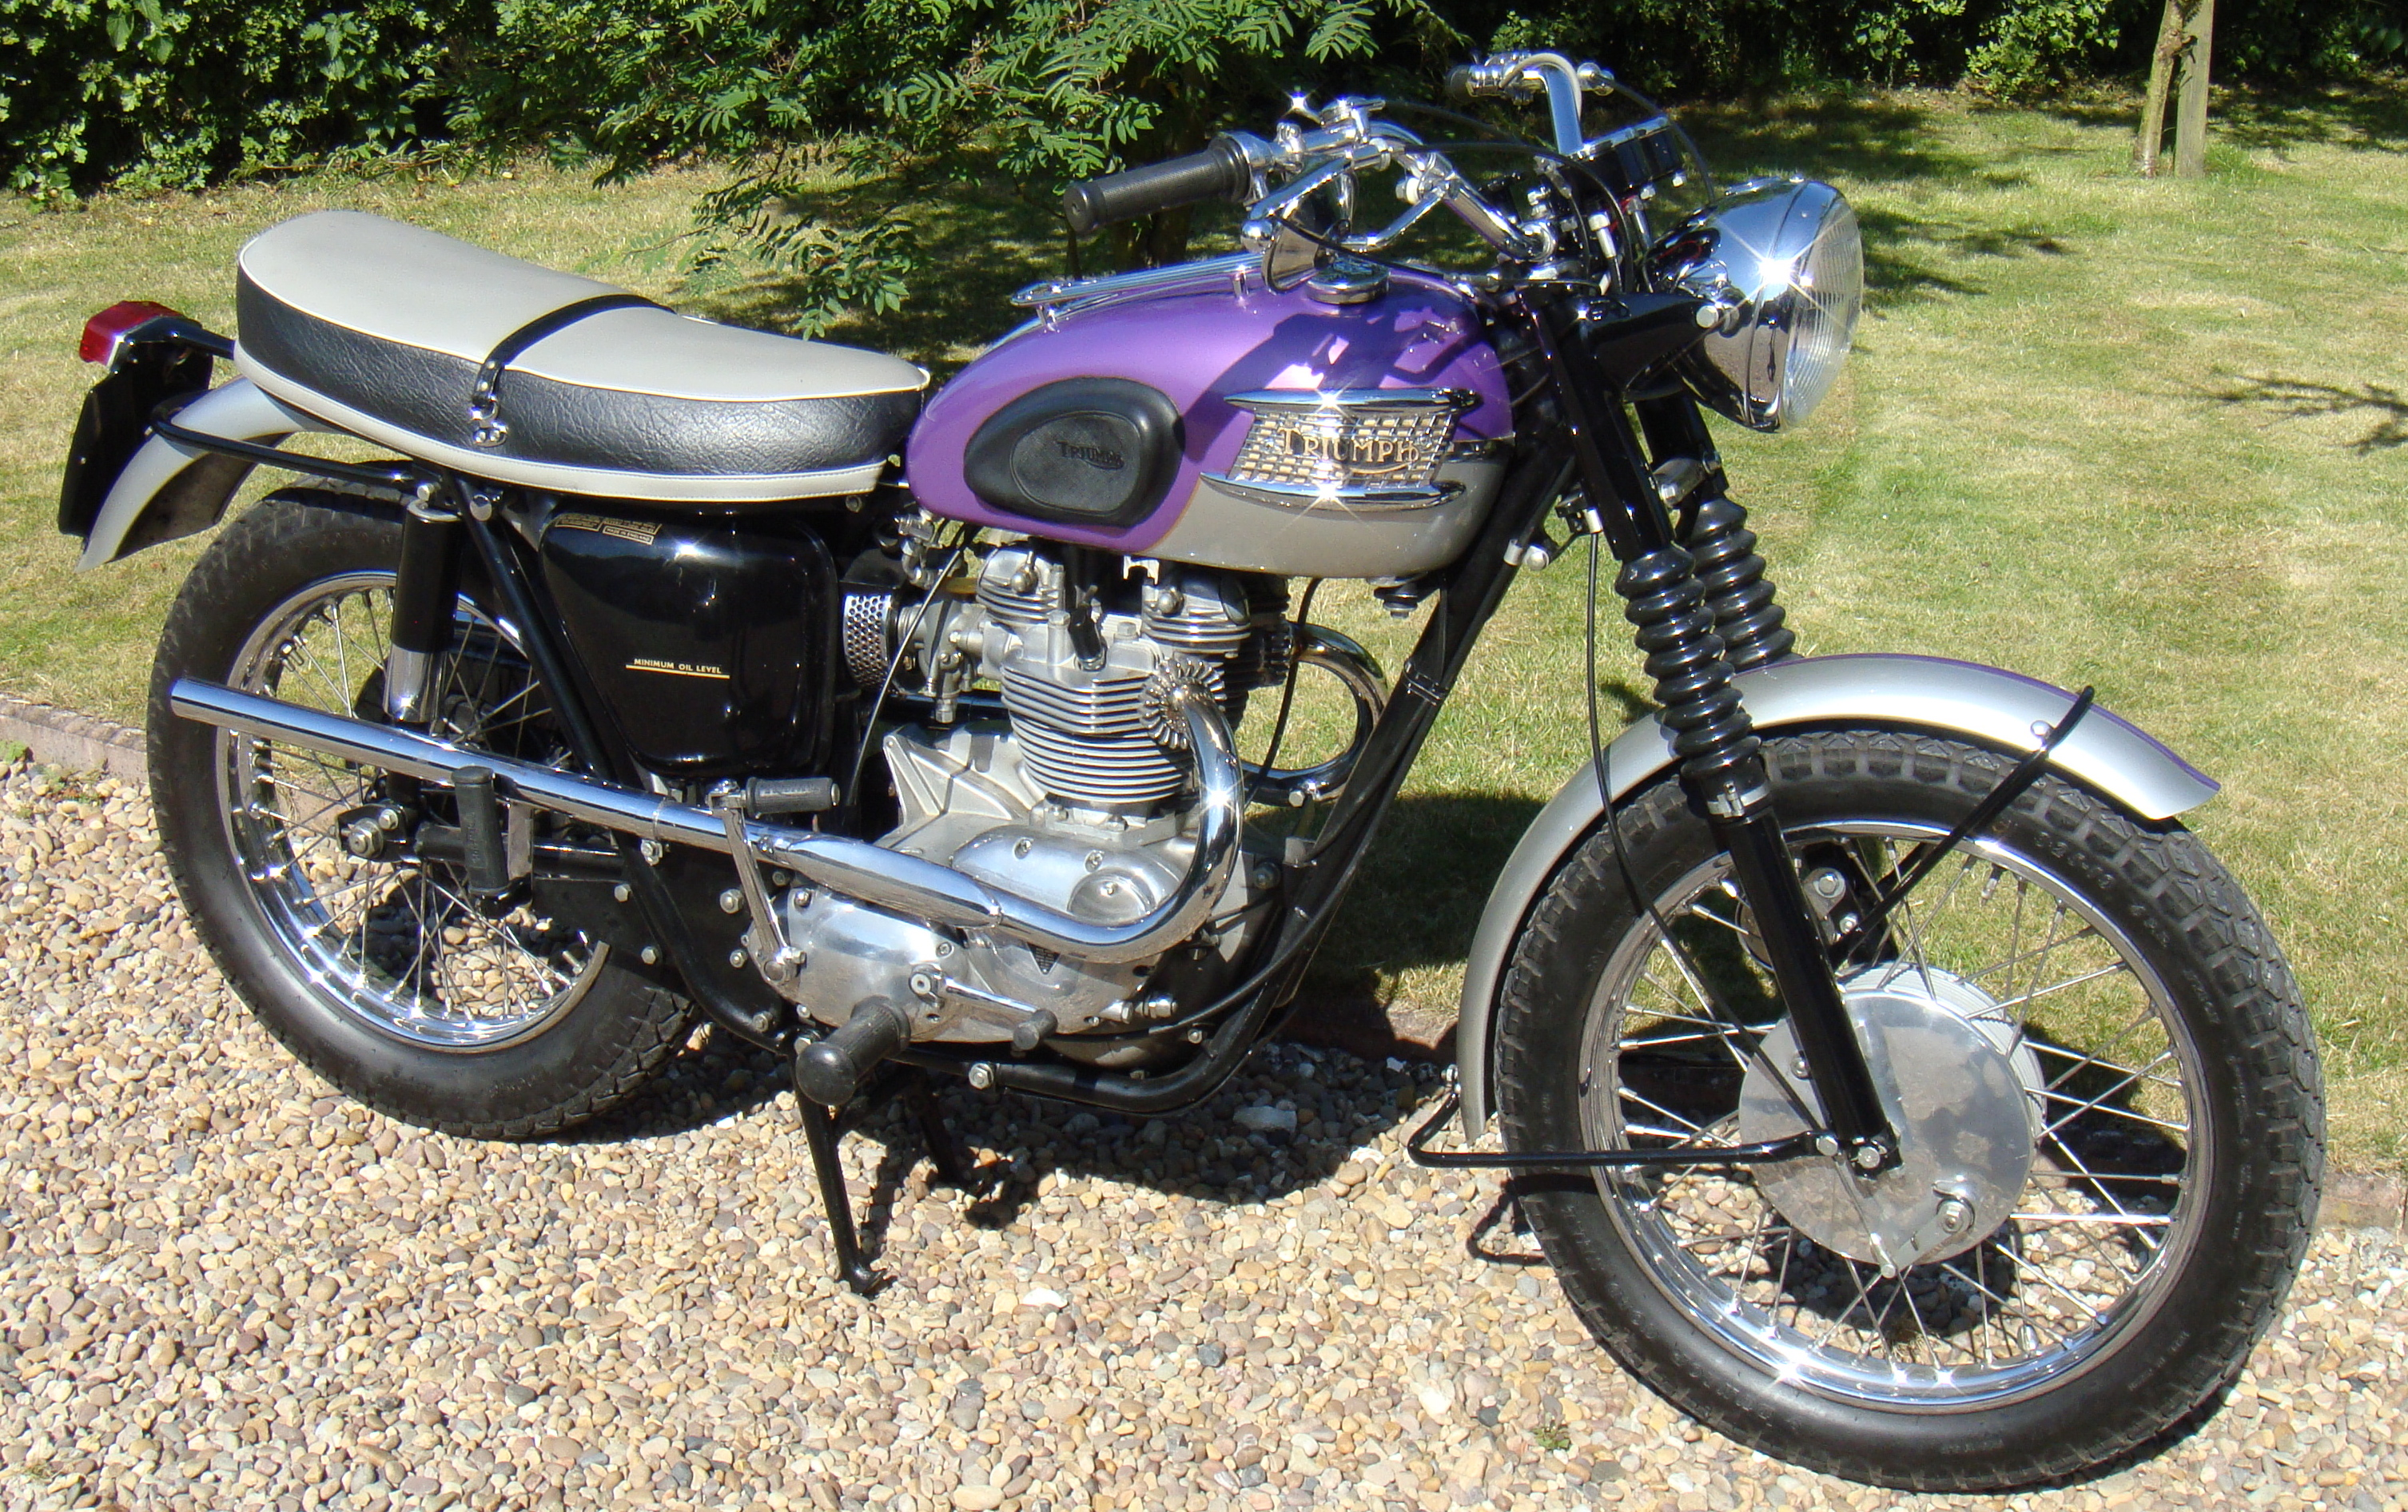 Tech triumph british chopper wiring diagrams additionally Wiring Diagrams also Grounding Wire Location Help Please 10069 in addition Triumphbonneville120 co likewise 1967 Triumph Tr6r Wiring Diagram. on 1967 triumph 650 bonneville wiring